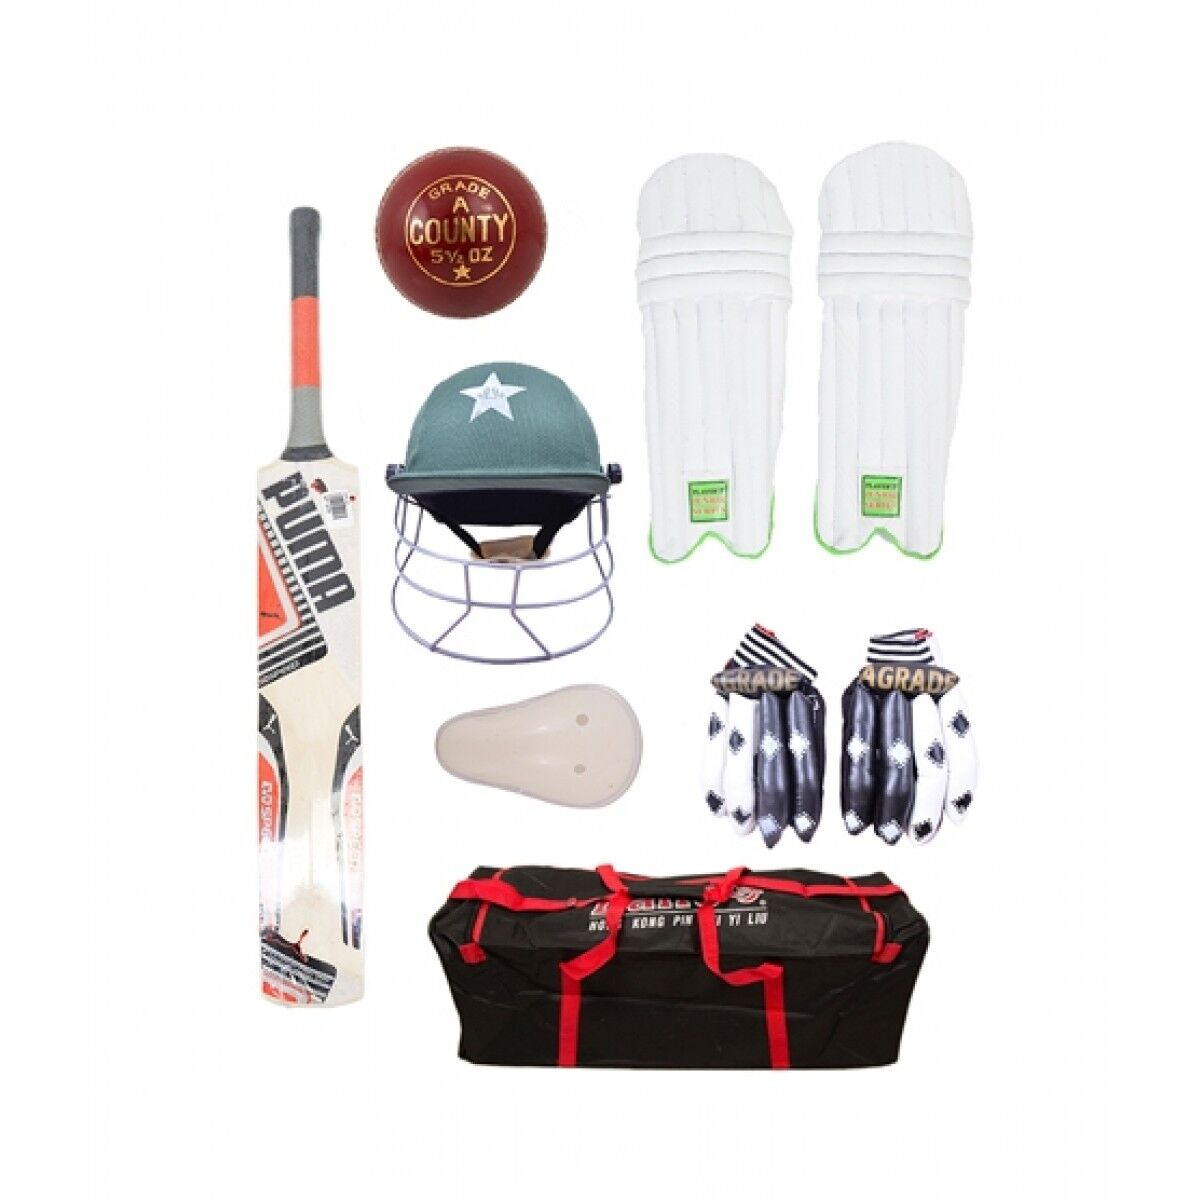 Asaan Buy Complete Cricket Kit For 9-14 Year Kids Pack of 8